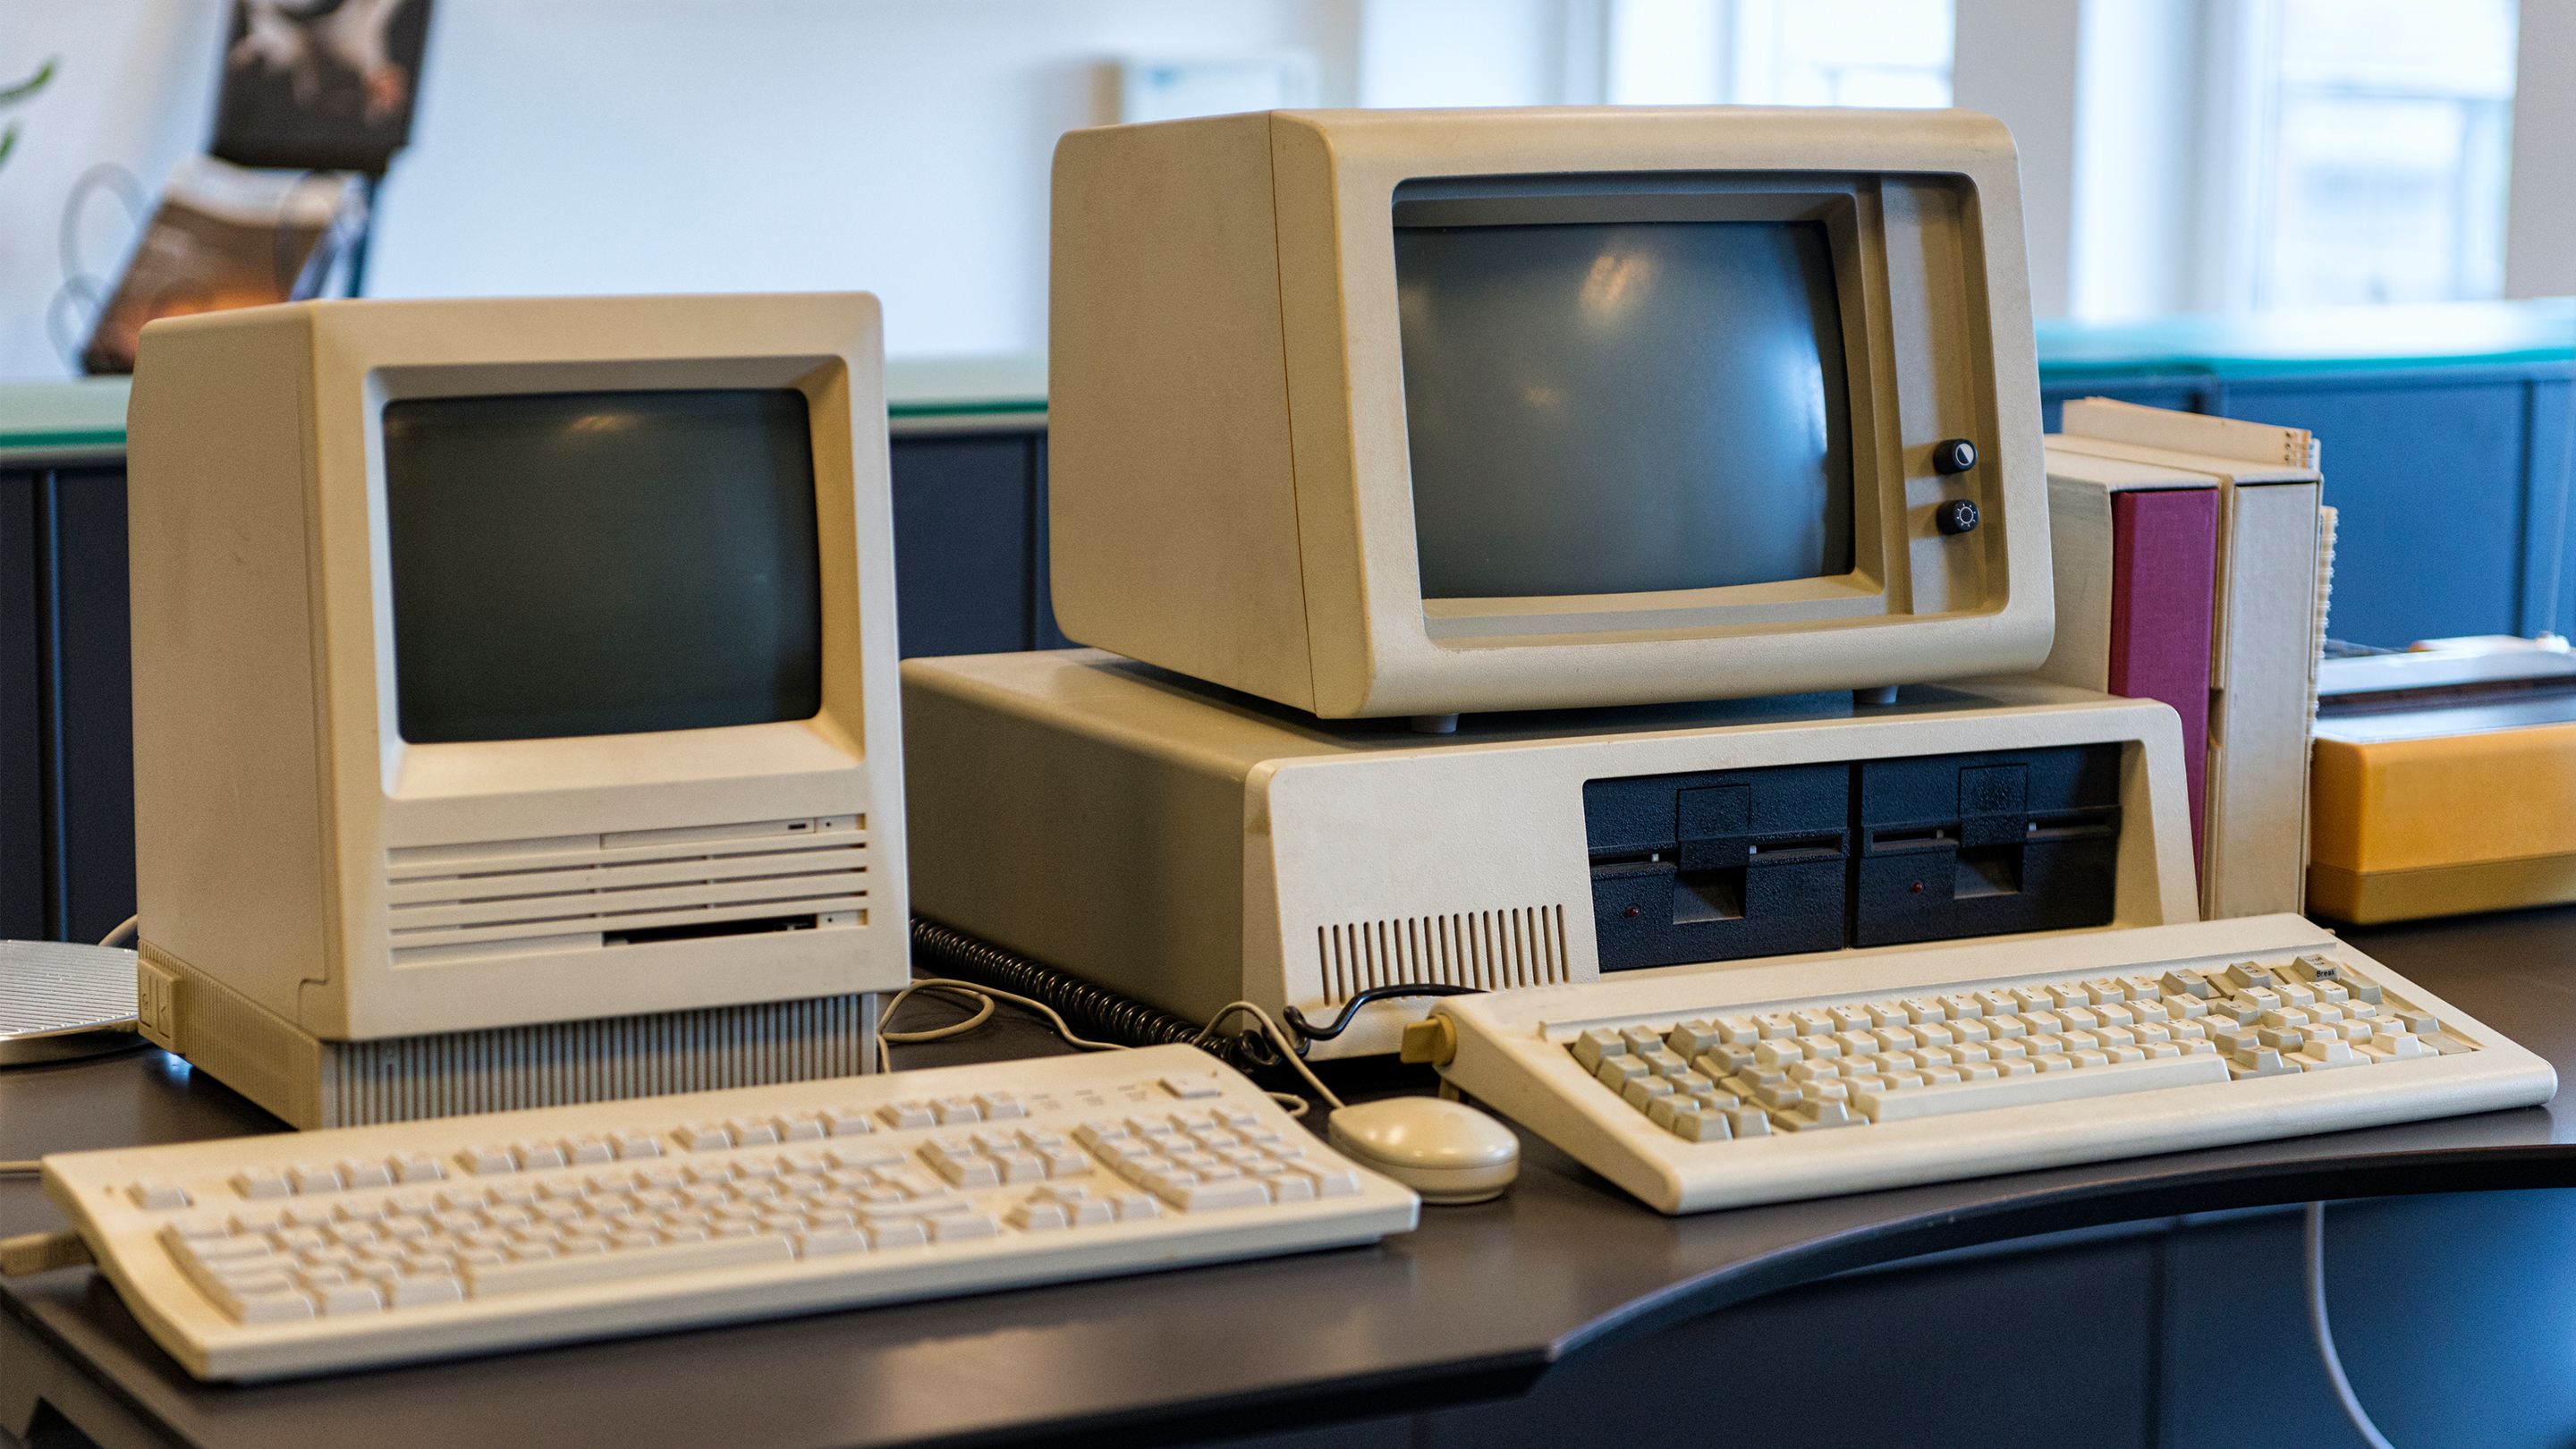 Old Apple computers from the 80's